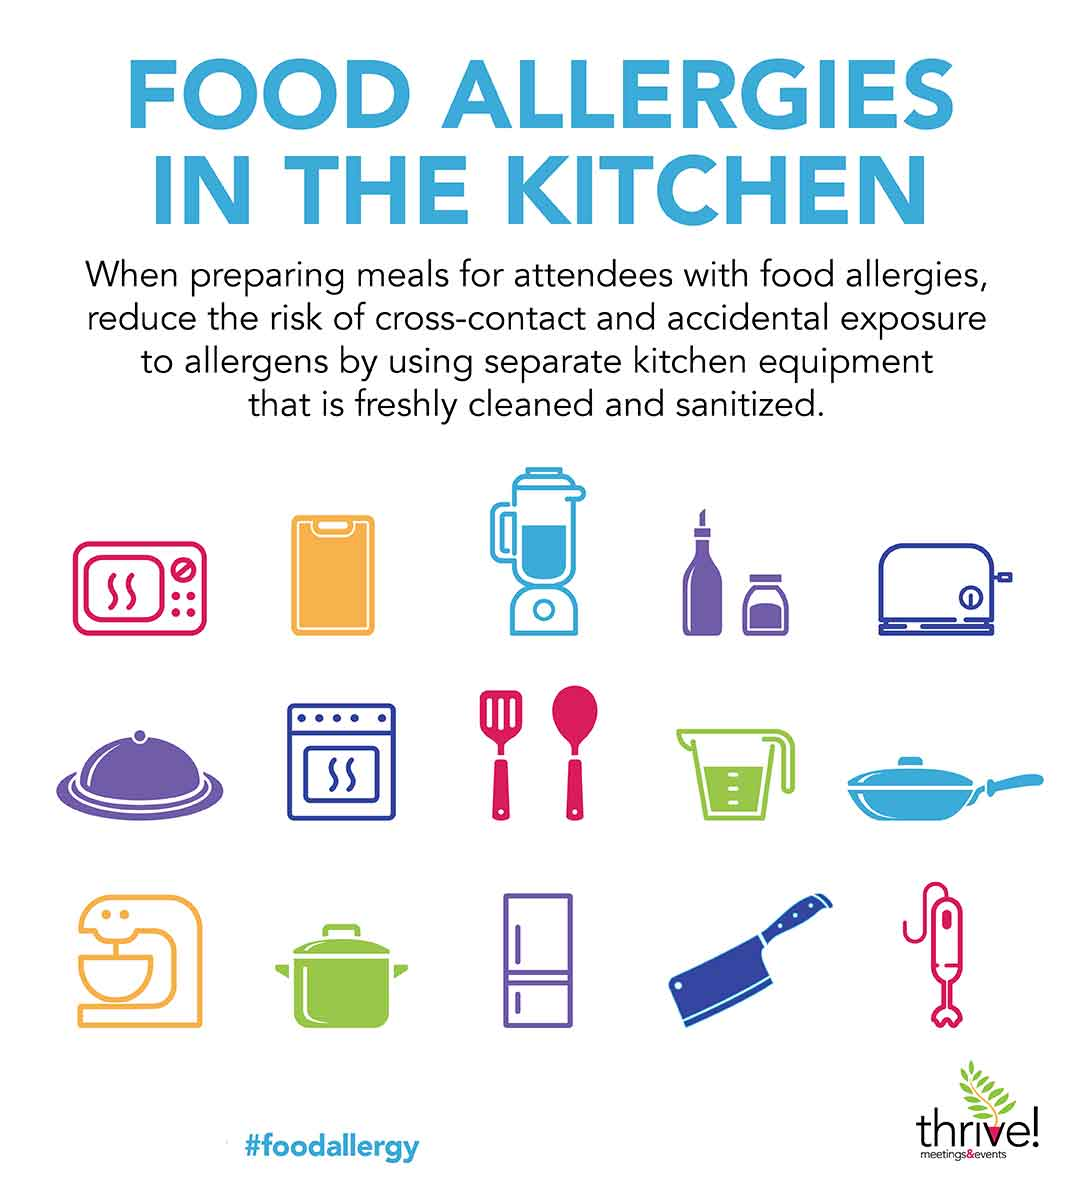 Infographic Food Allergies in the Kitchen describing and showing tools as icon that need to be considered